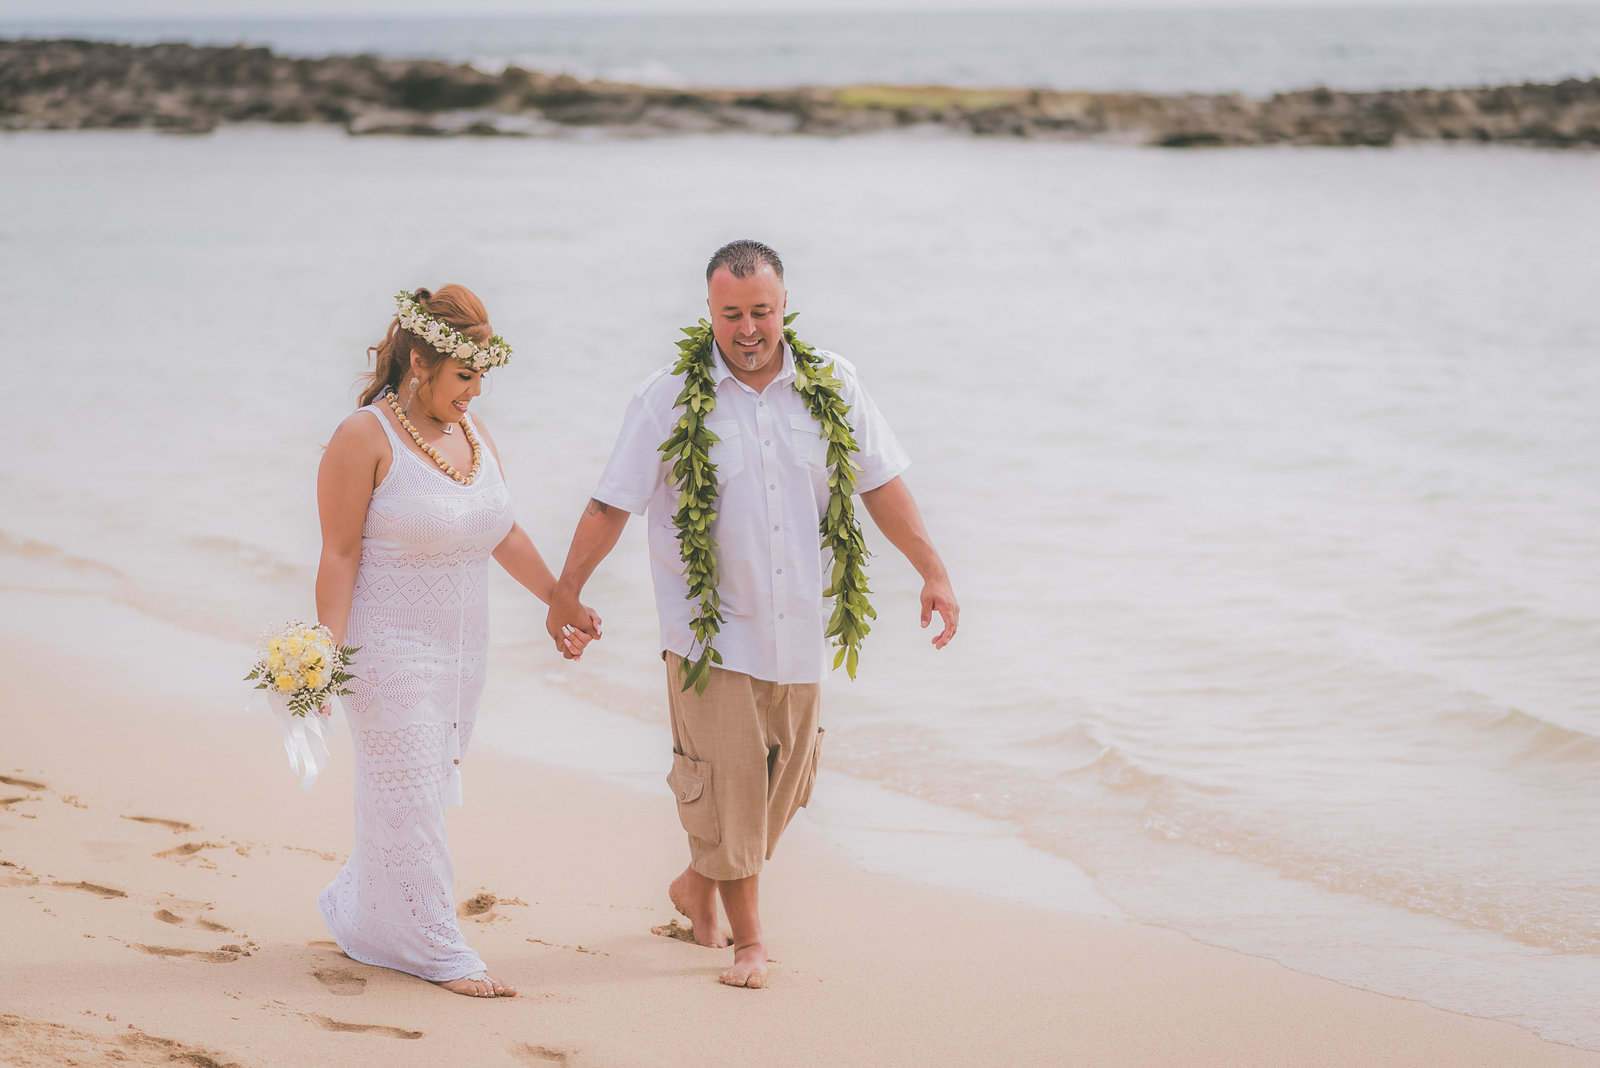 Bride and groom hold hands and walk on Paradise Cove beach in Oahu.